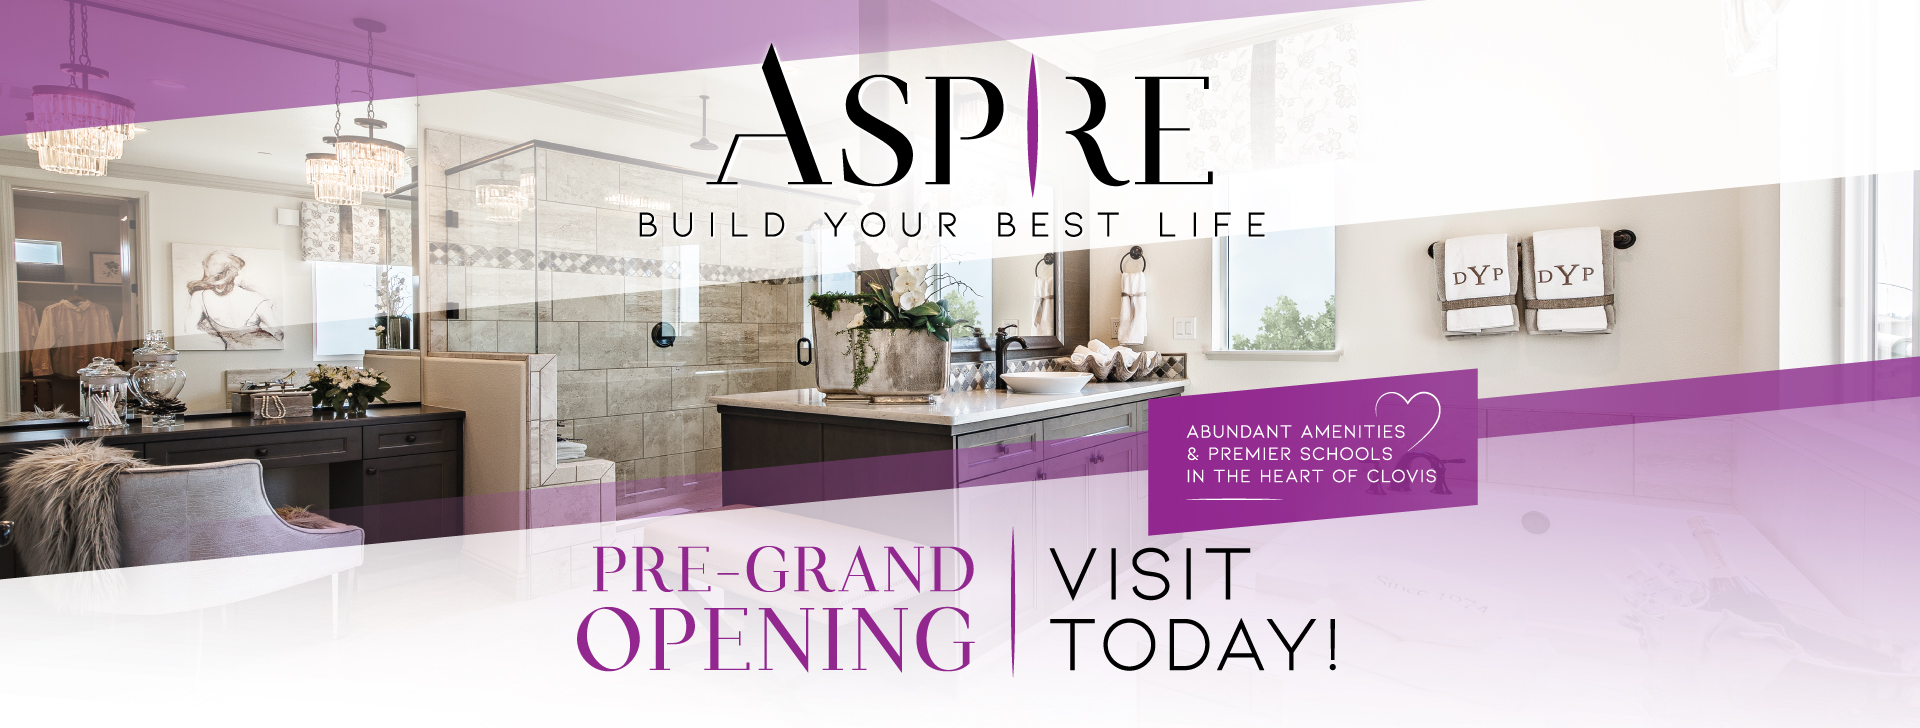 70% Sold At DeYoung Aspire During Successful Pre-Grand Opening! Hurry! Don't Miss Your Chance!